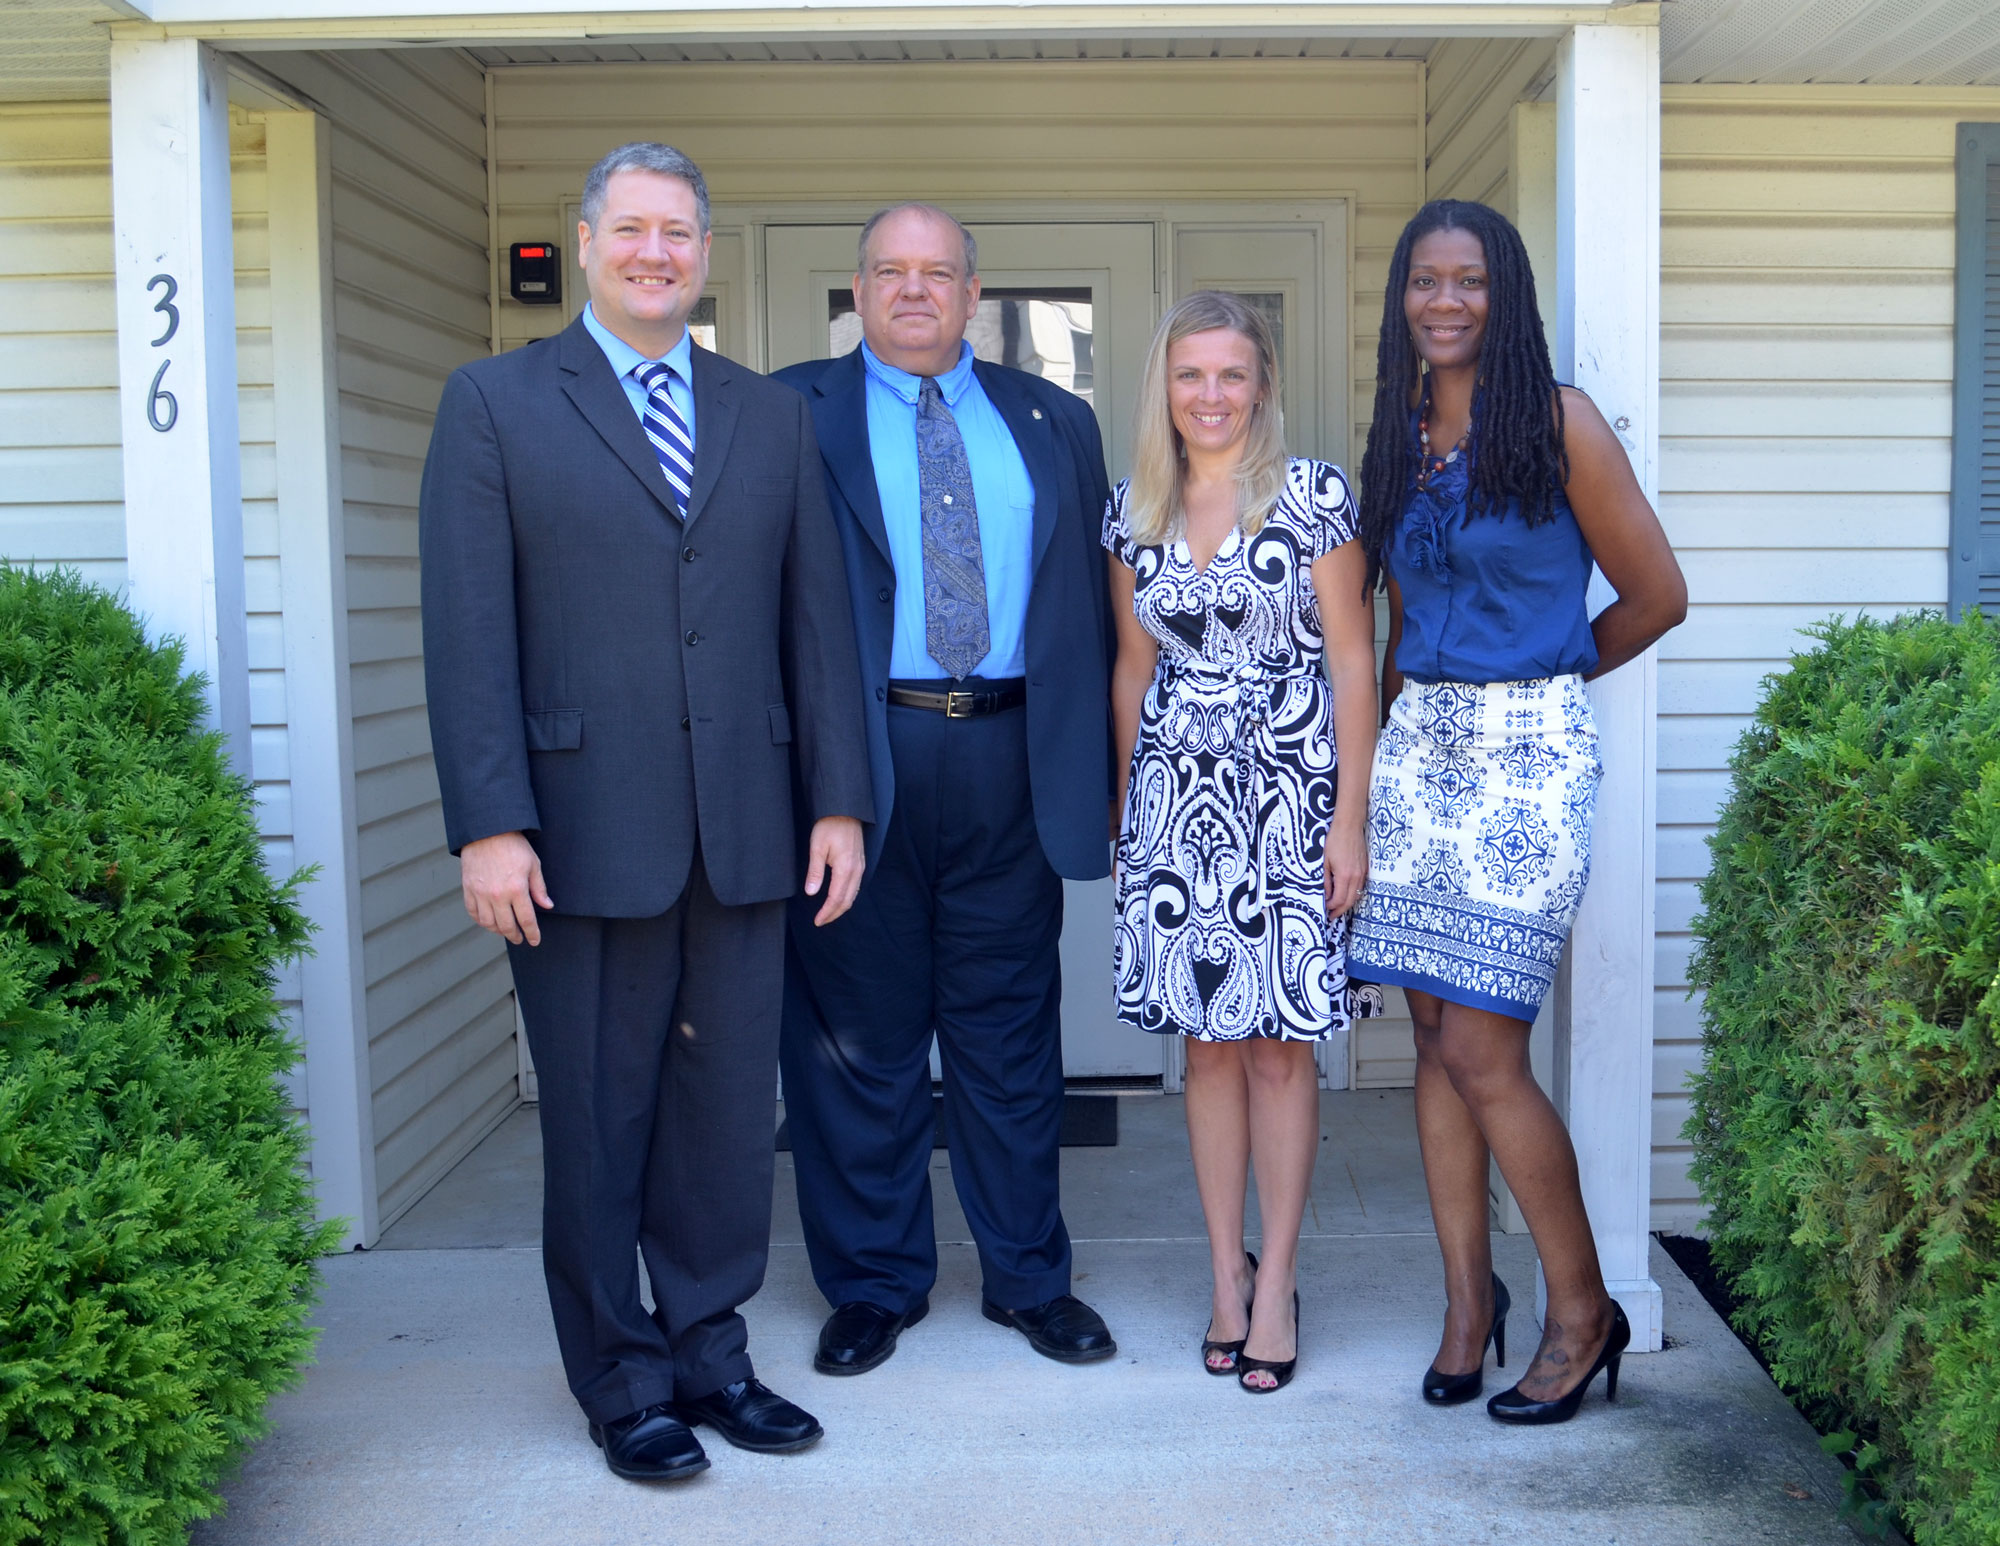 Assemblyman Dan Benson, John S. Pavlovsky Jr., CPA & Chairperson of the National Community Options Business Advisory Council, Svetlana Repic-Qira, Community Options Regional Vice-President for New Jersey, & Hope Kye, Community Options Executive Director for Mercer County, New Jersey at our Hamilton Home.